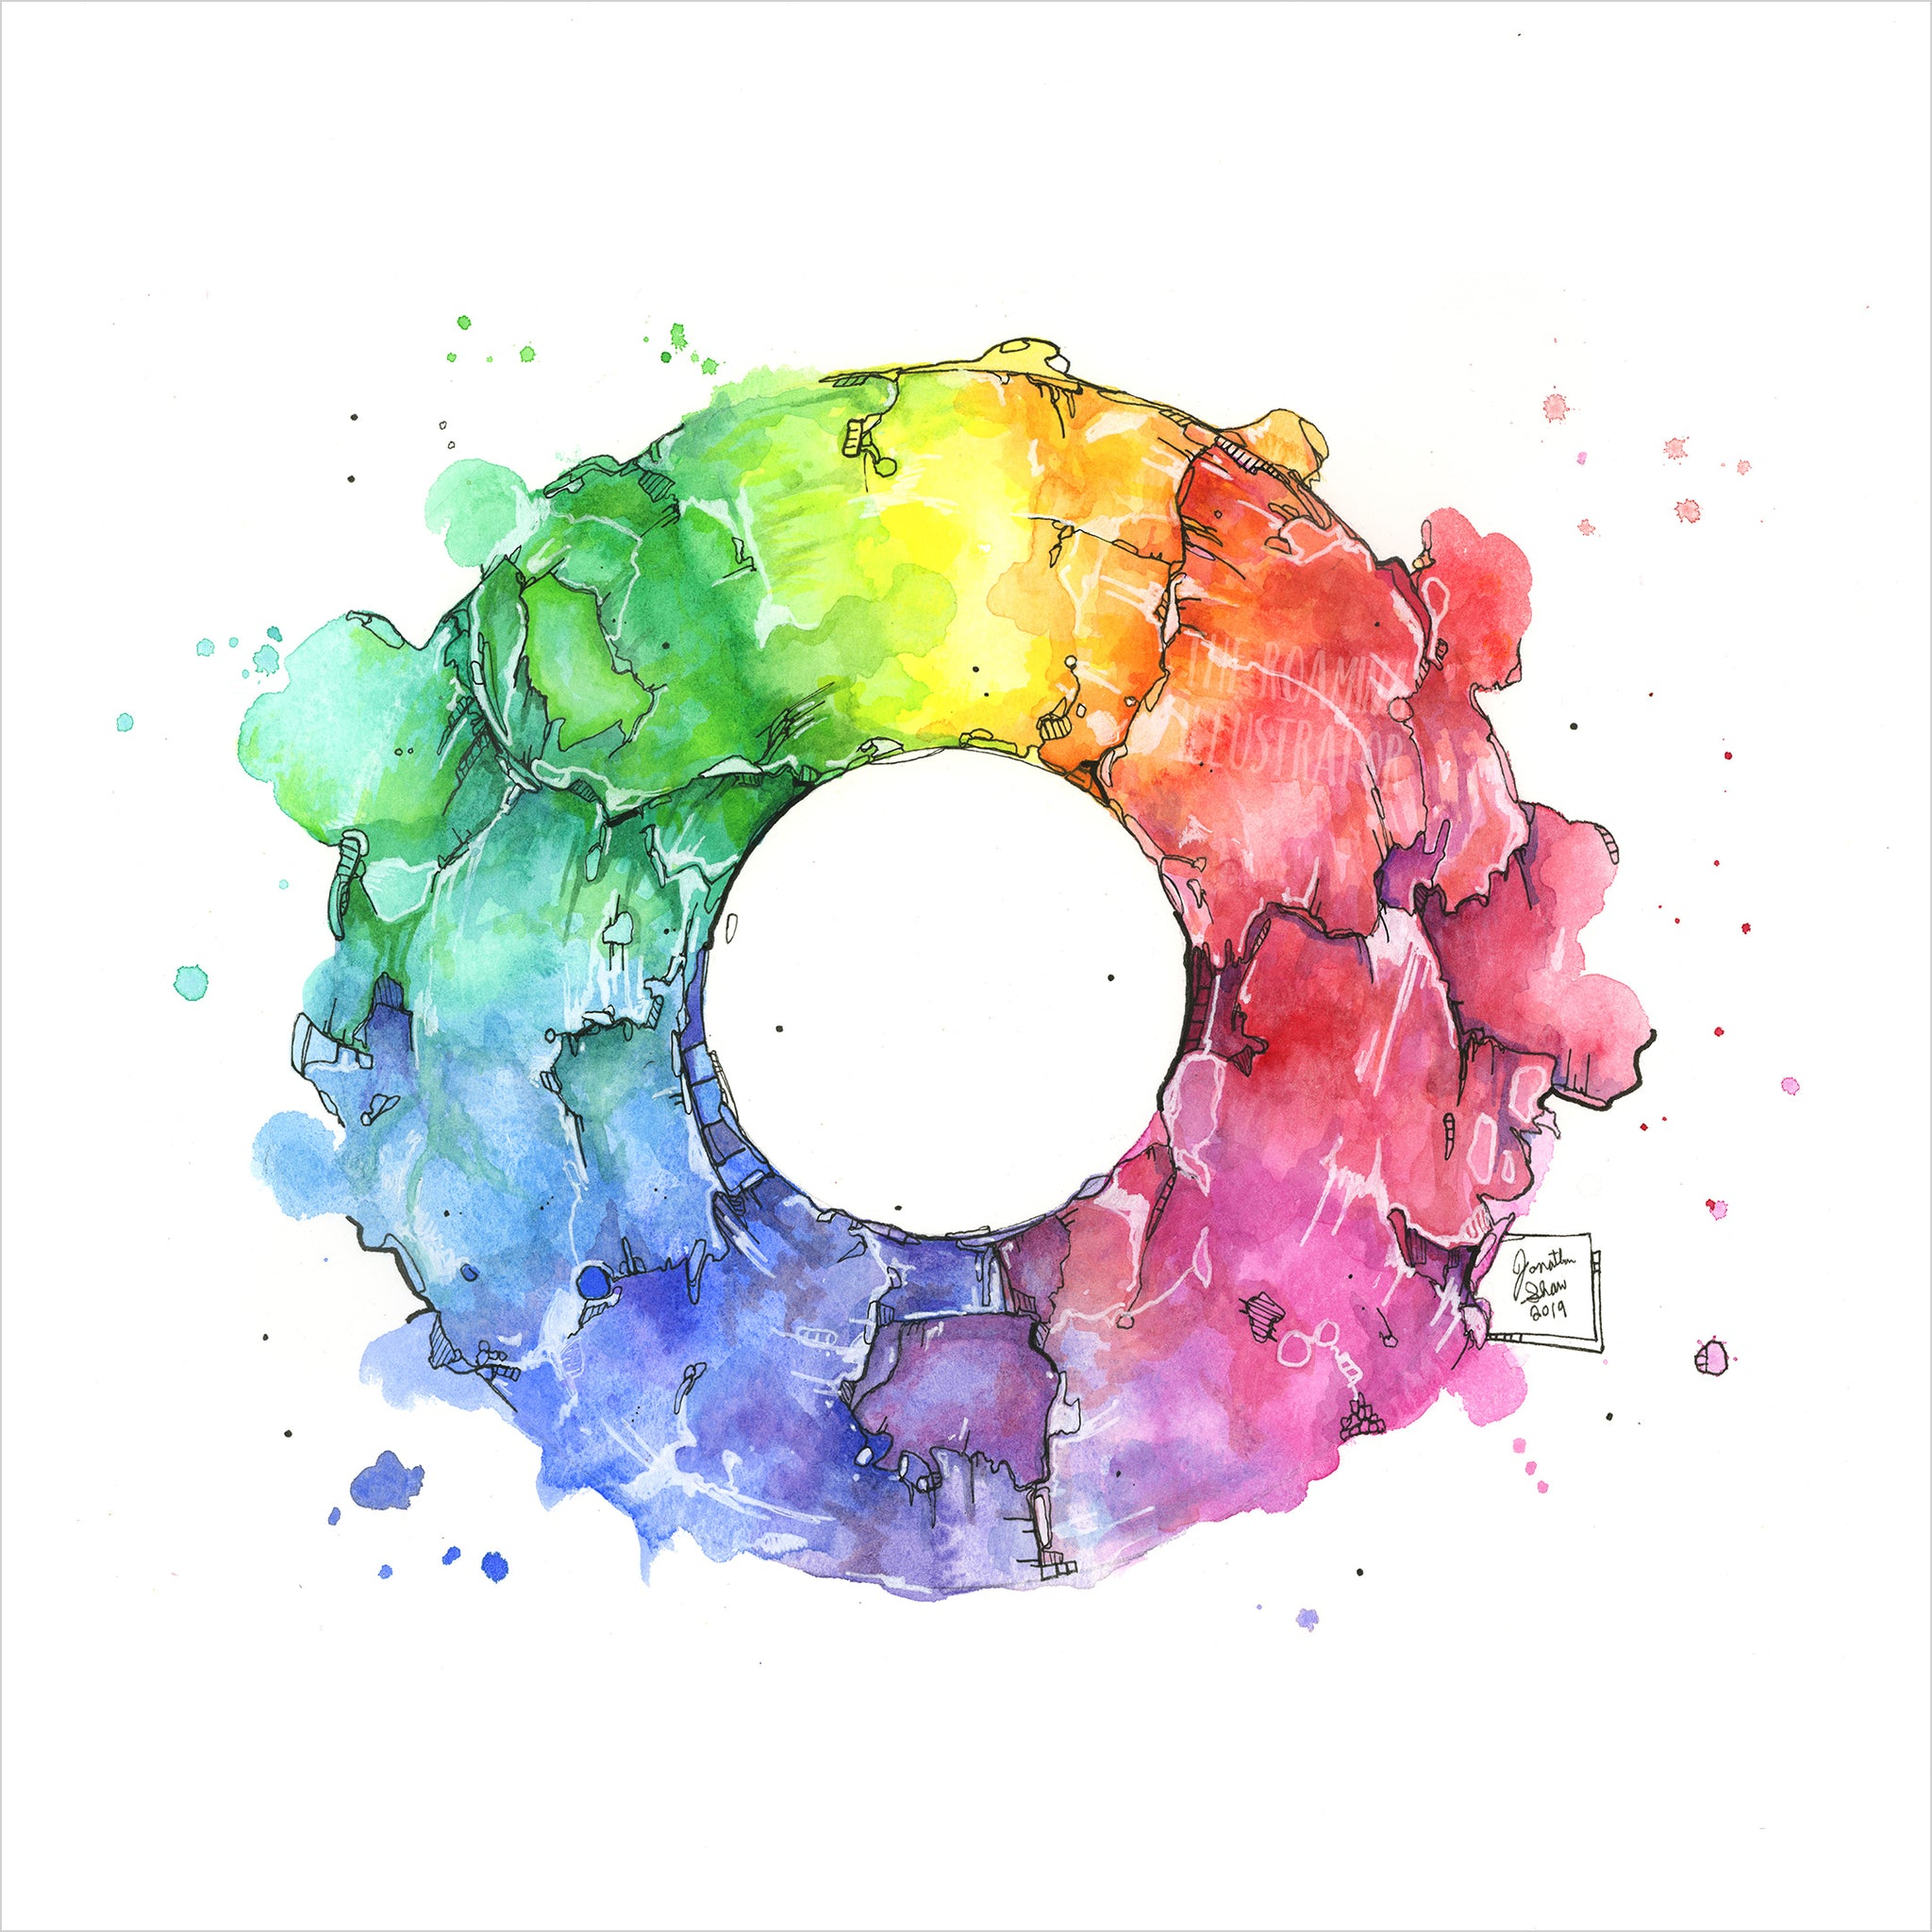 """Colour Wheel"" - Original 8x10 Illustration (SOLD)"